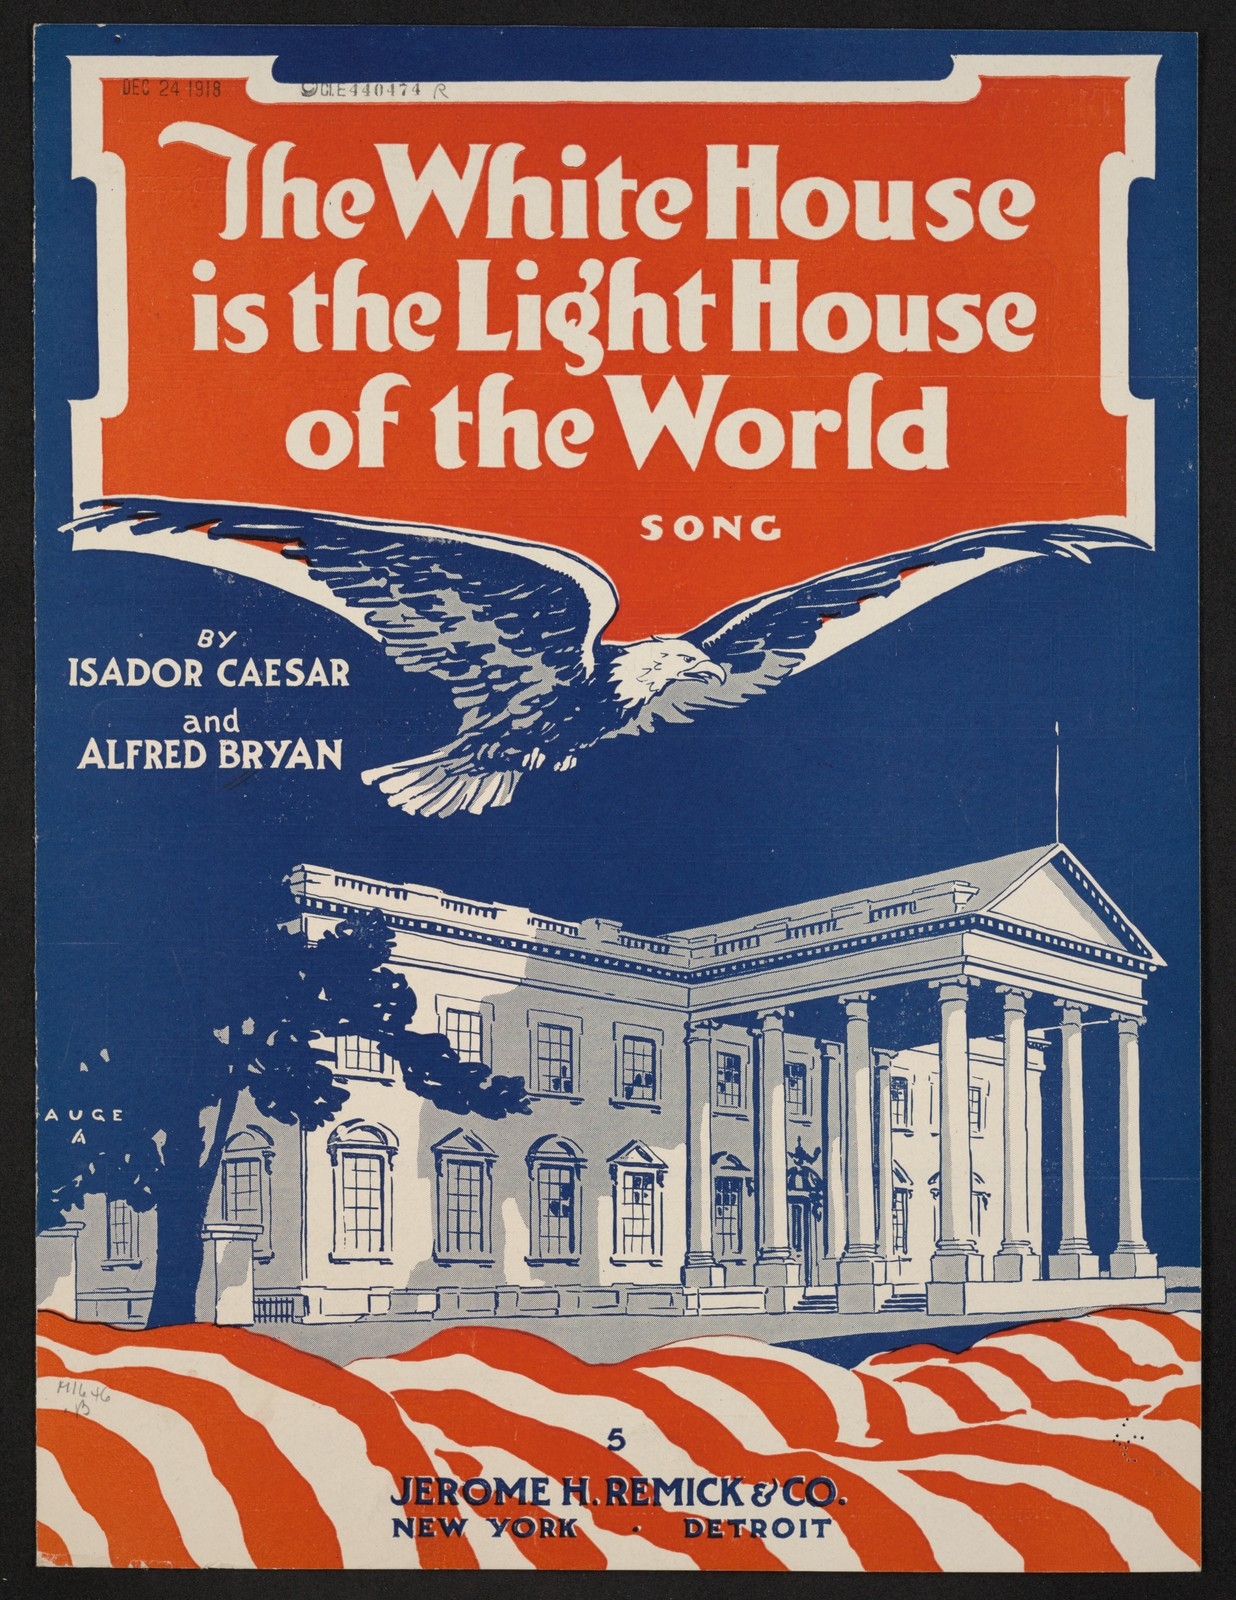 The  white house is the light house of the world